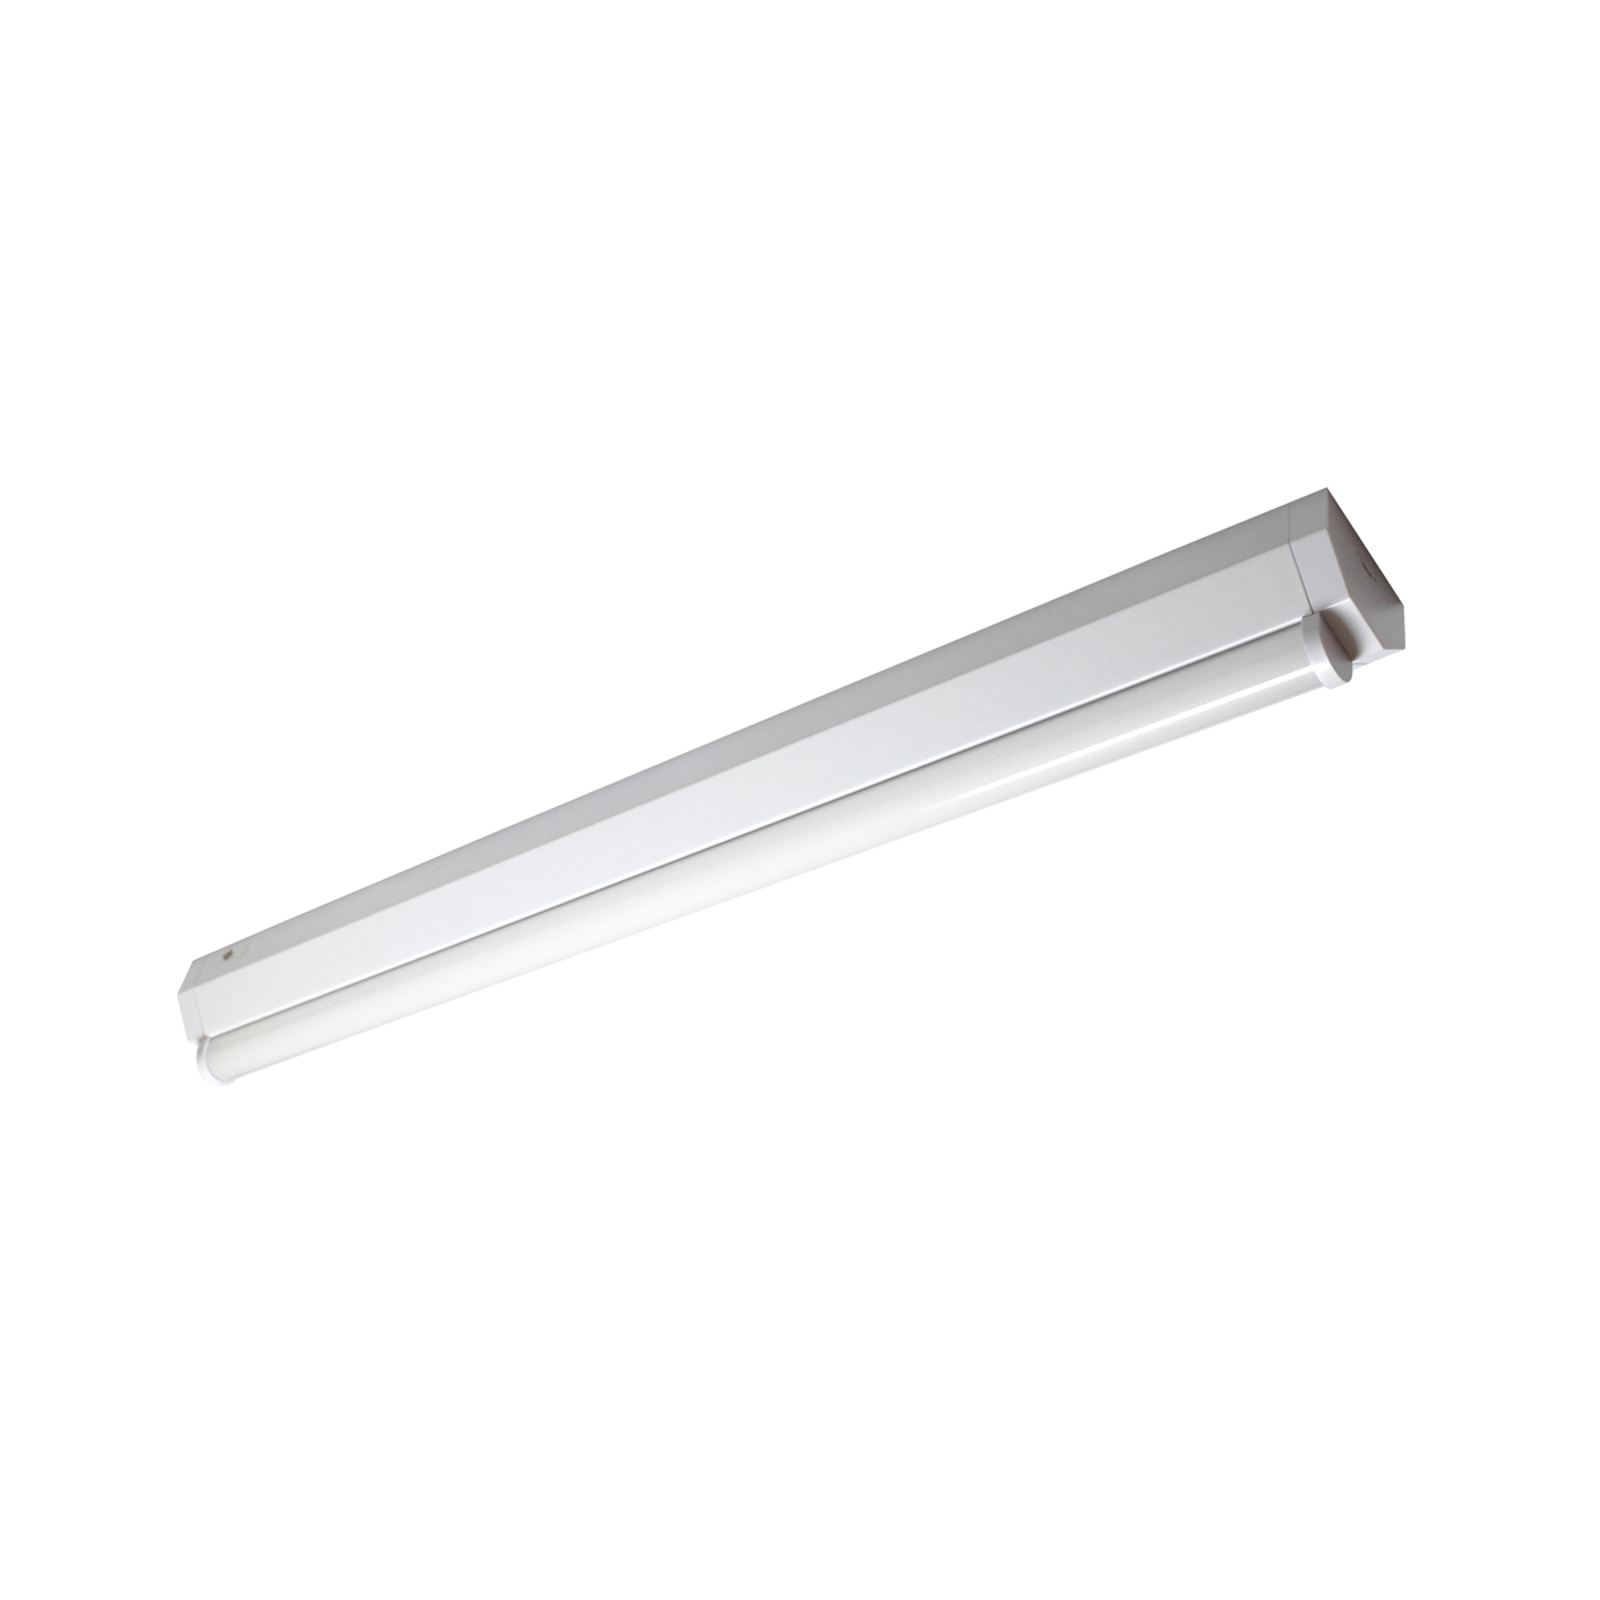 Universell LED-taklampe Basic 1 - 60 cm